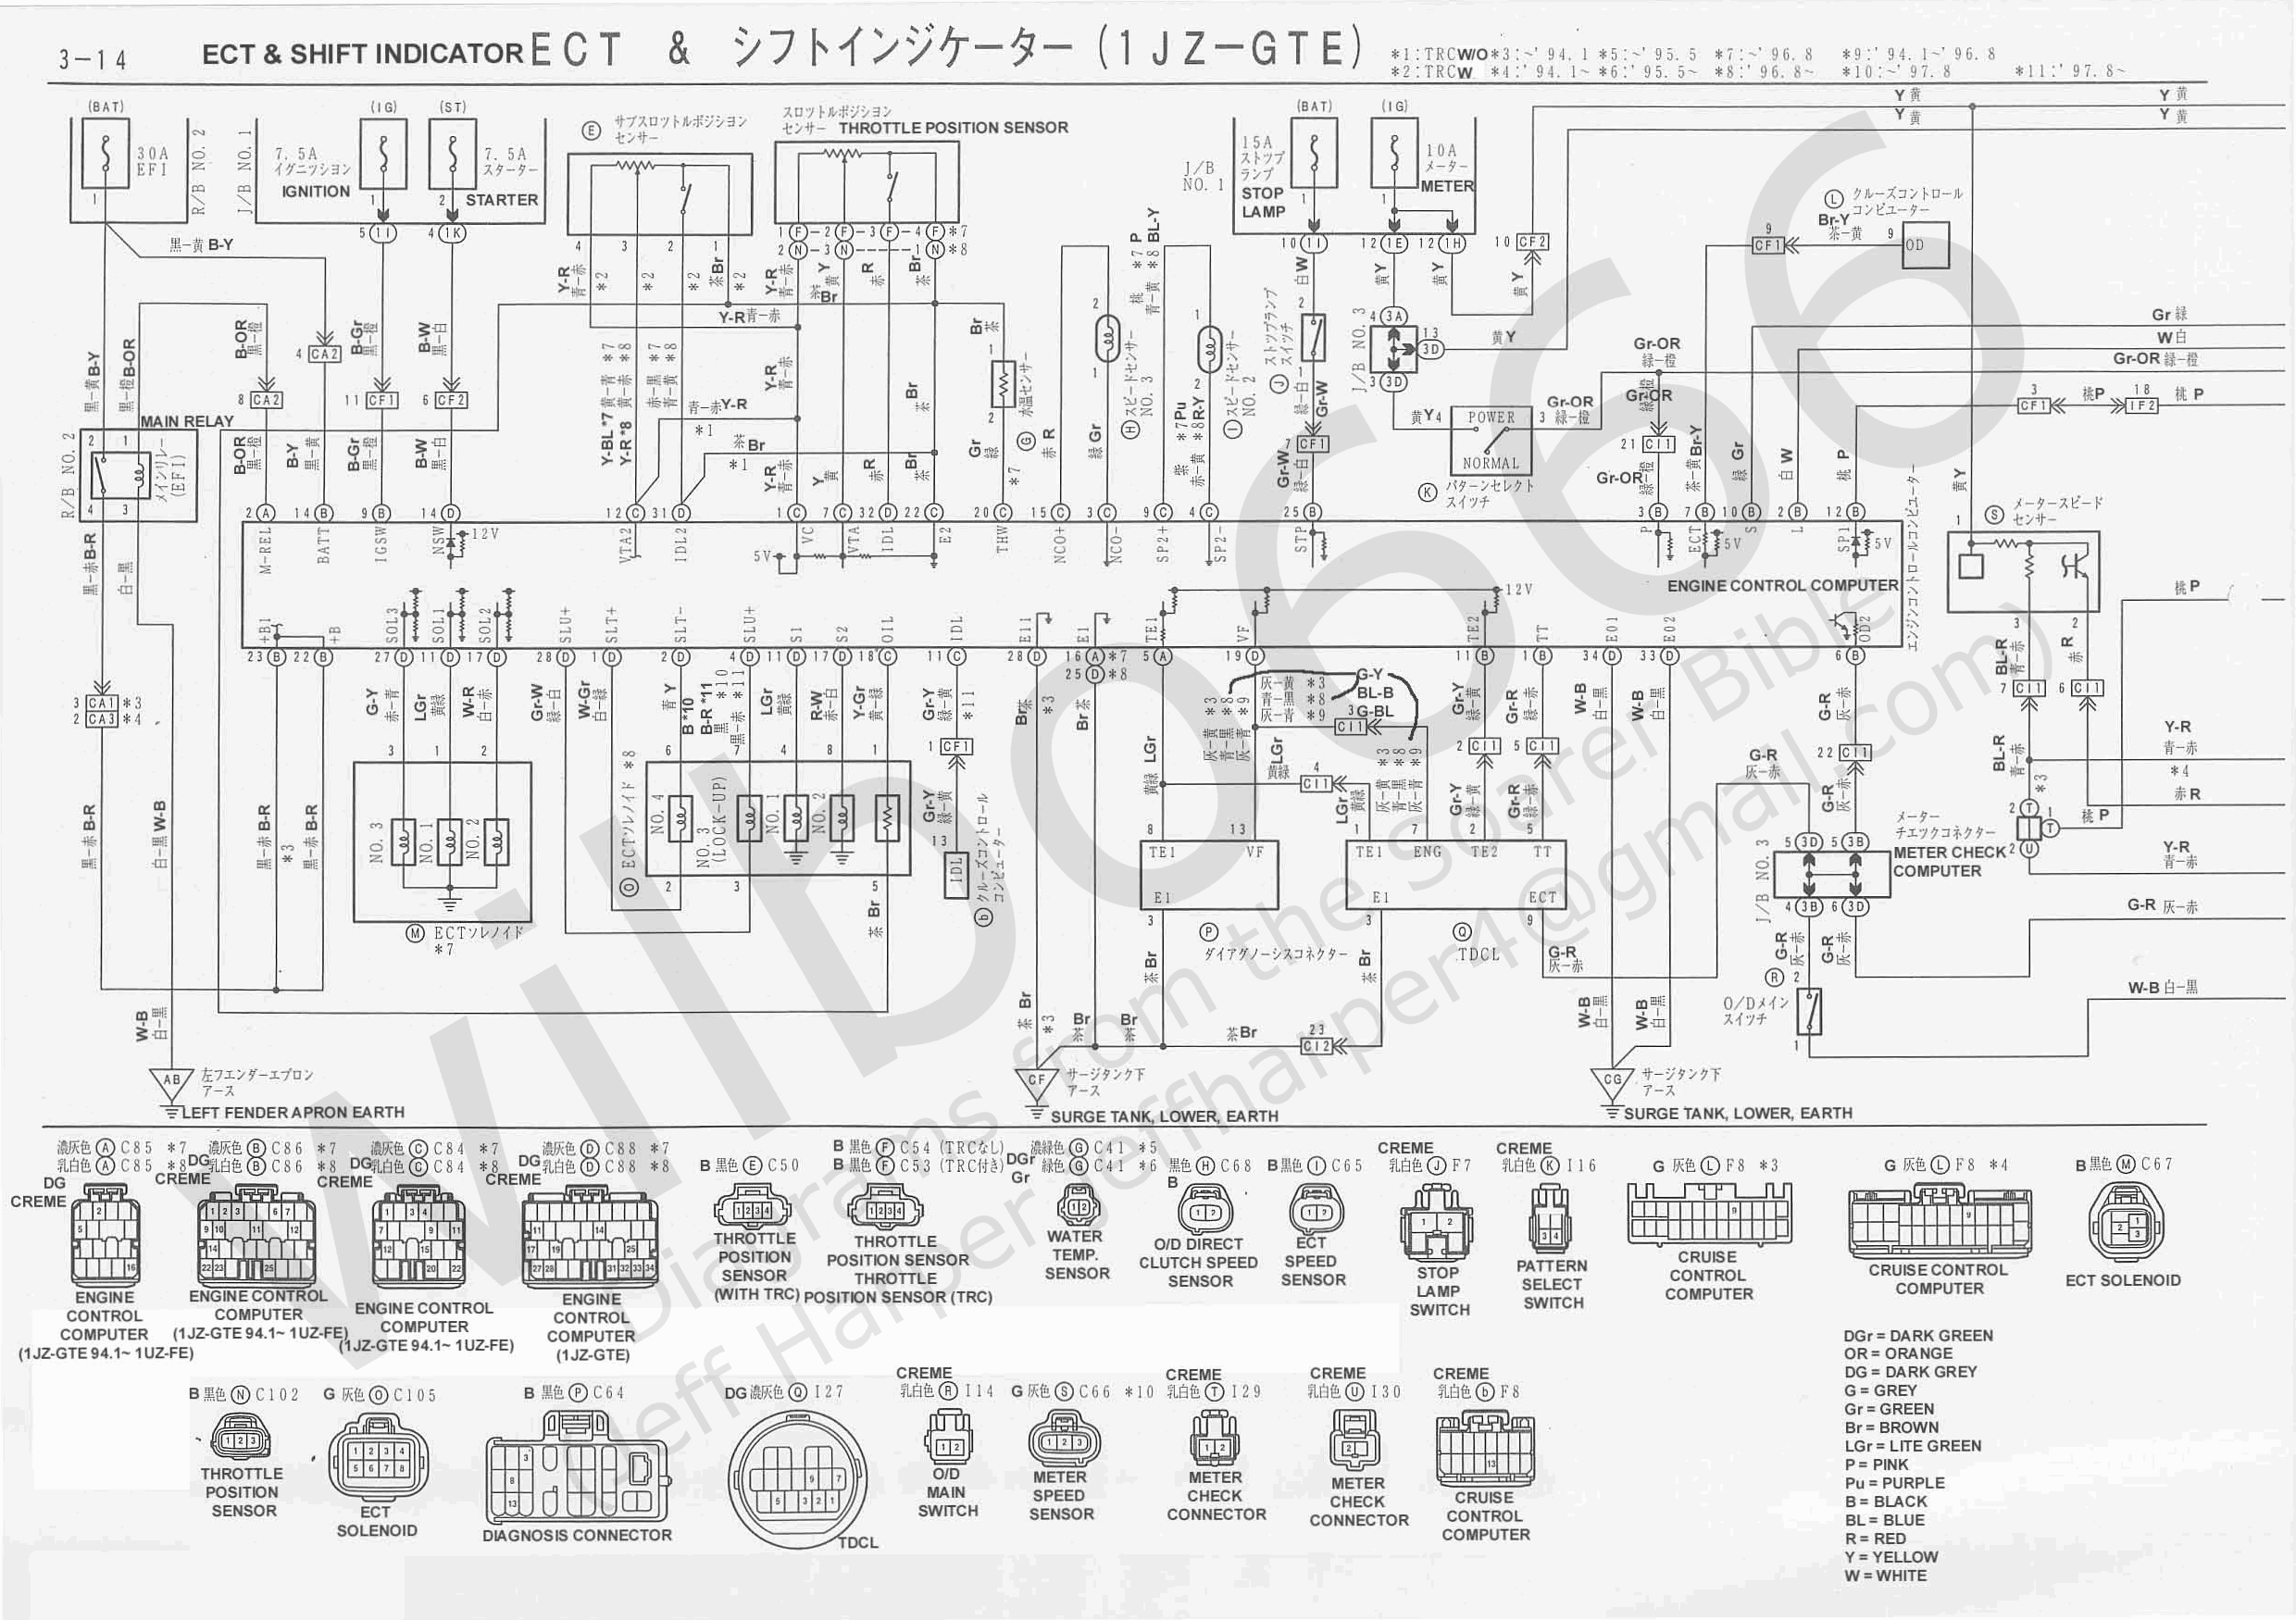 xZZ3x Electrical Wiring Diagram 6737105 3 14?resize\\\\\\\=665%2C469 8 inch bazooka tube wiring diagram bazooka installation diagram bazooka tube wiring harness diagram at soozxer.org